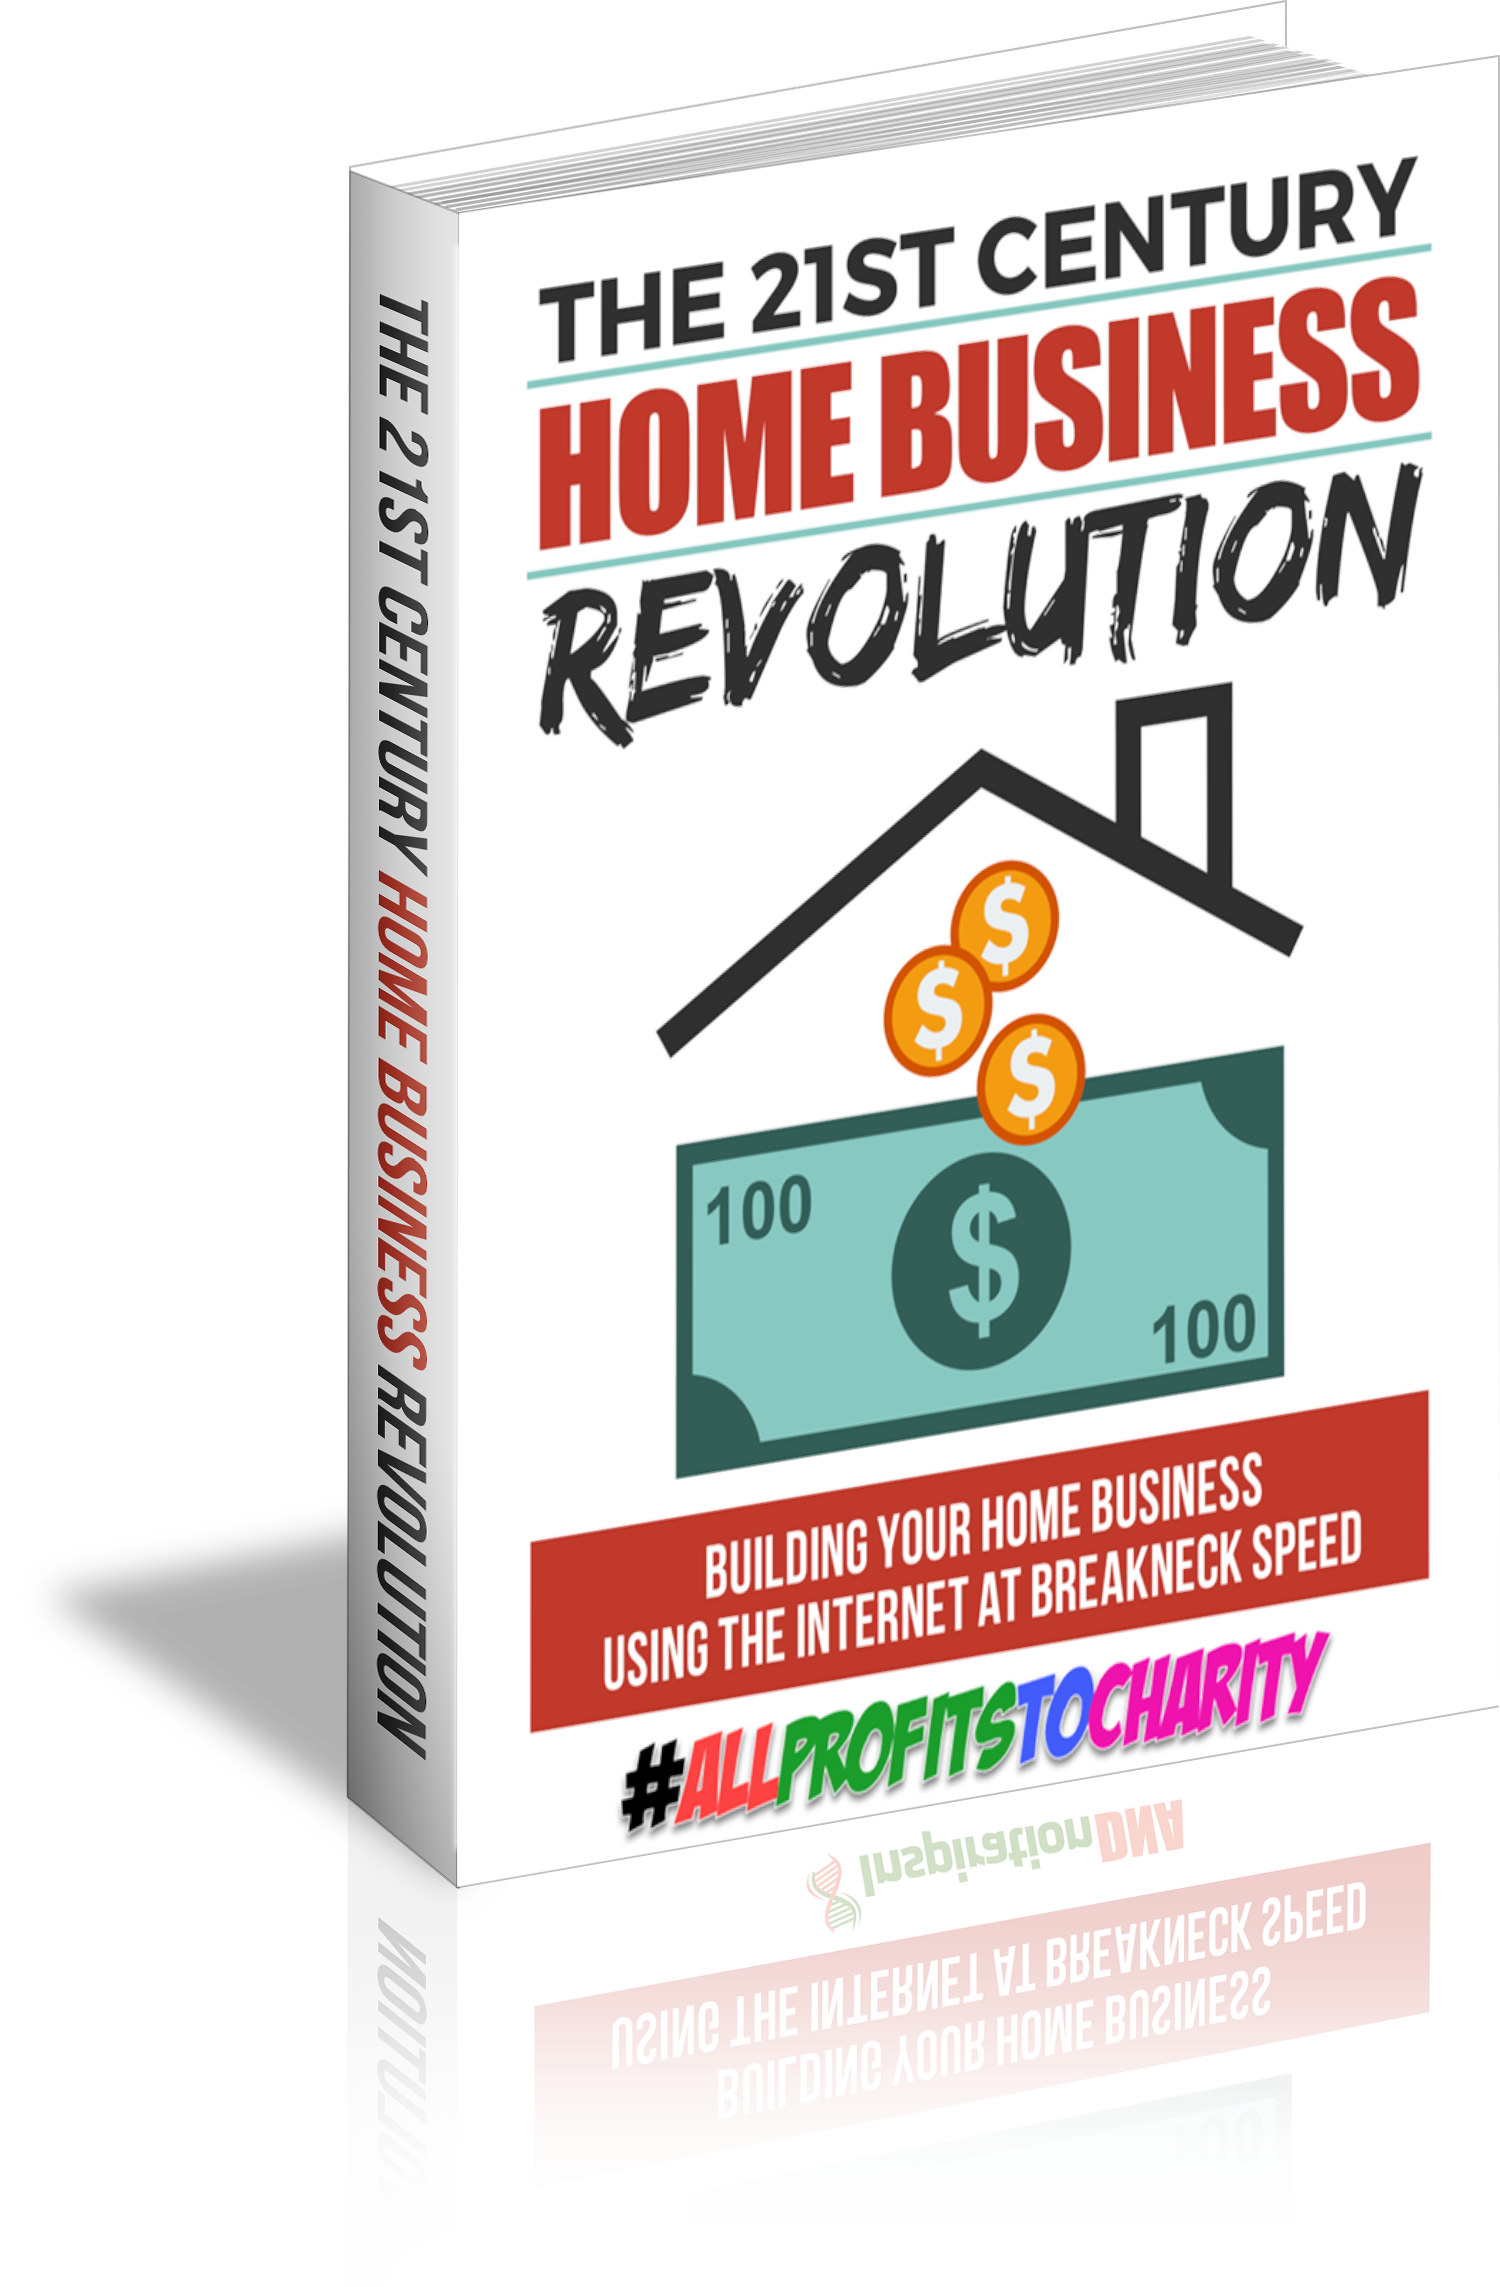 The 21st Century Home Business Revolution cover